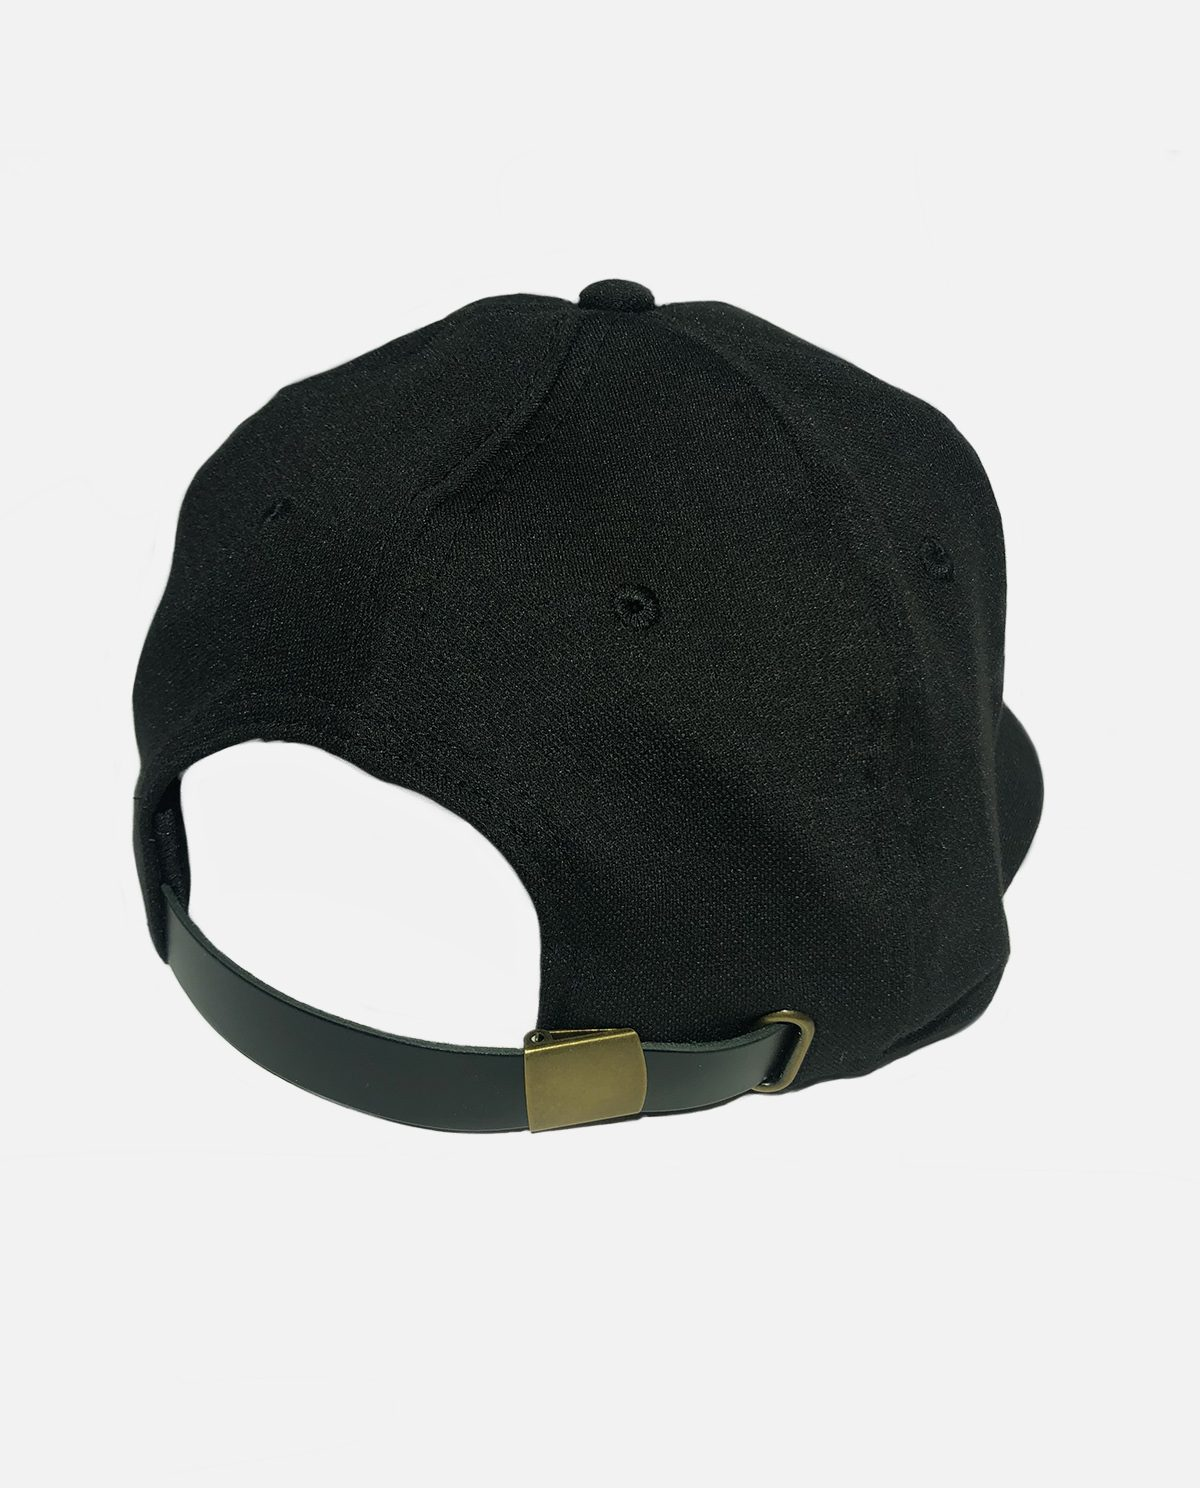 nysea-20wintercollection_hat-skyline-black-back